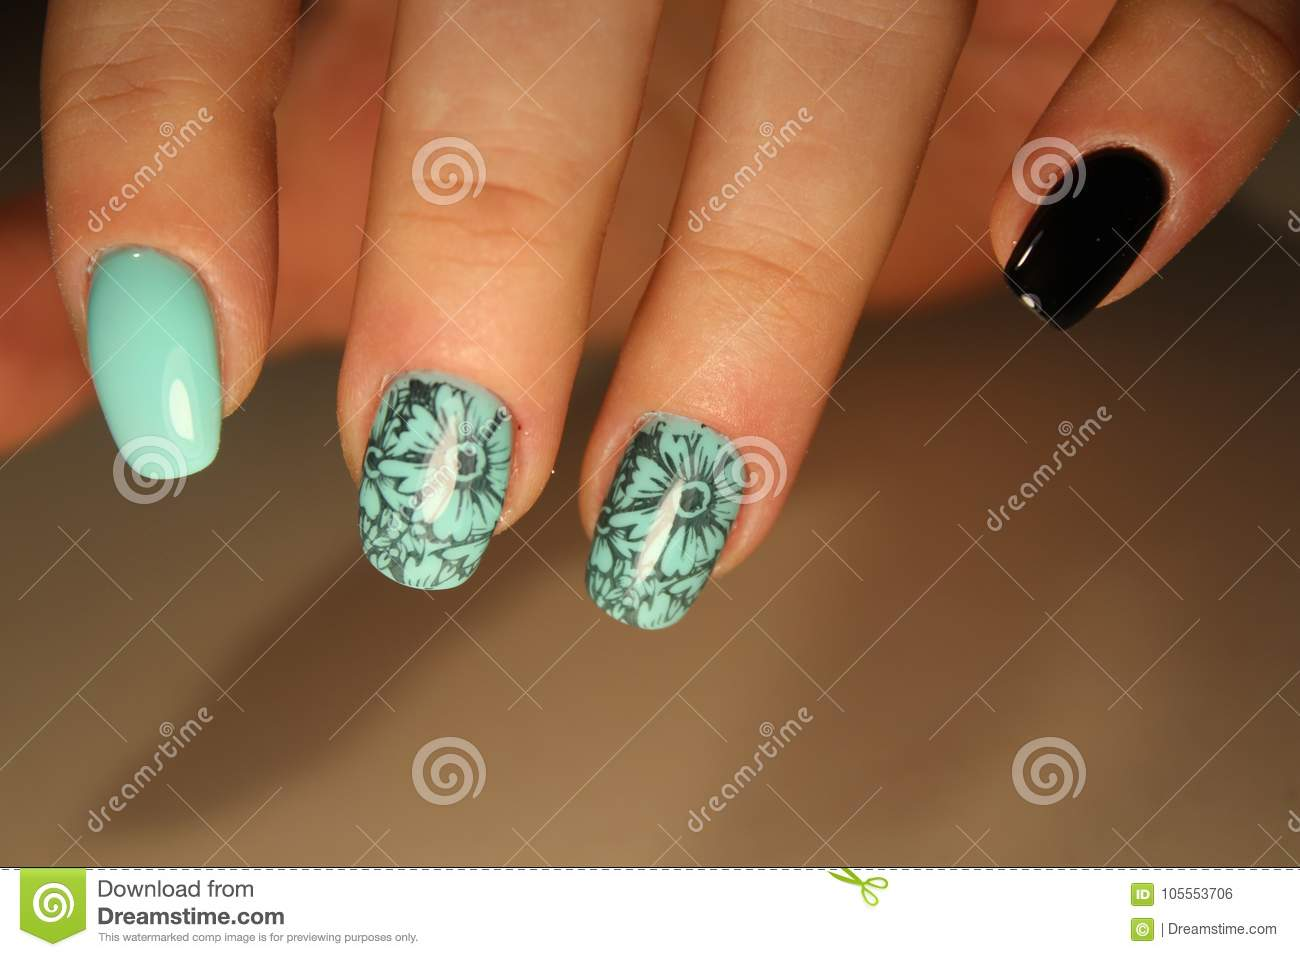 Manicured Nails Nail Polish Art Design Stock Photo Image Of